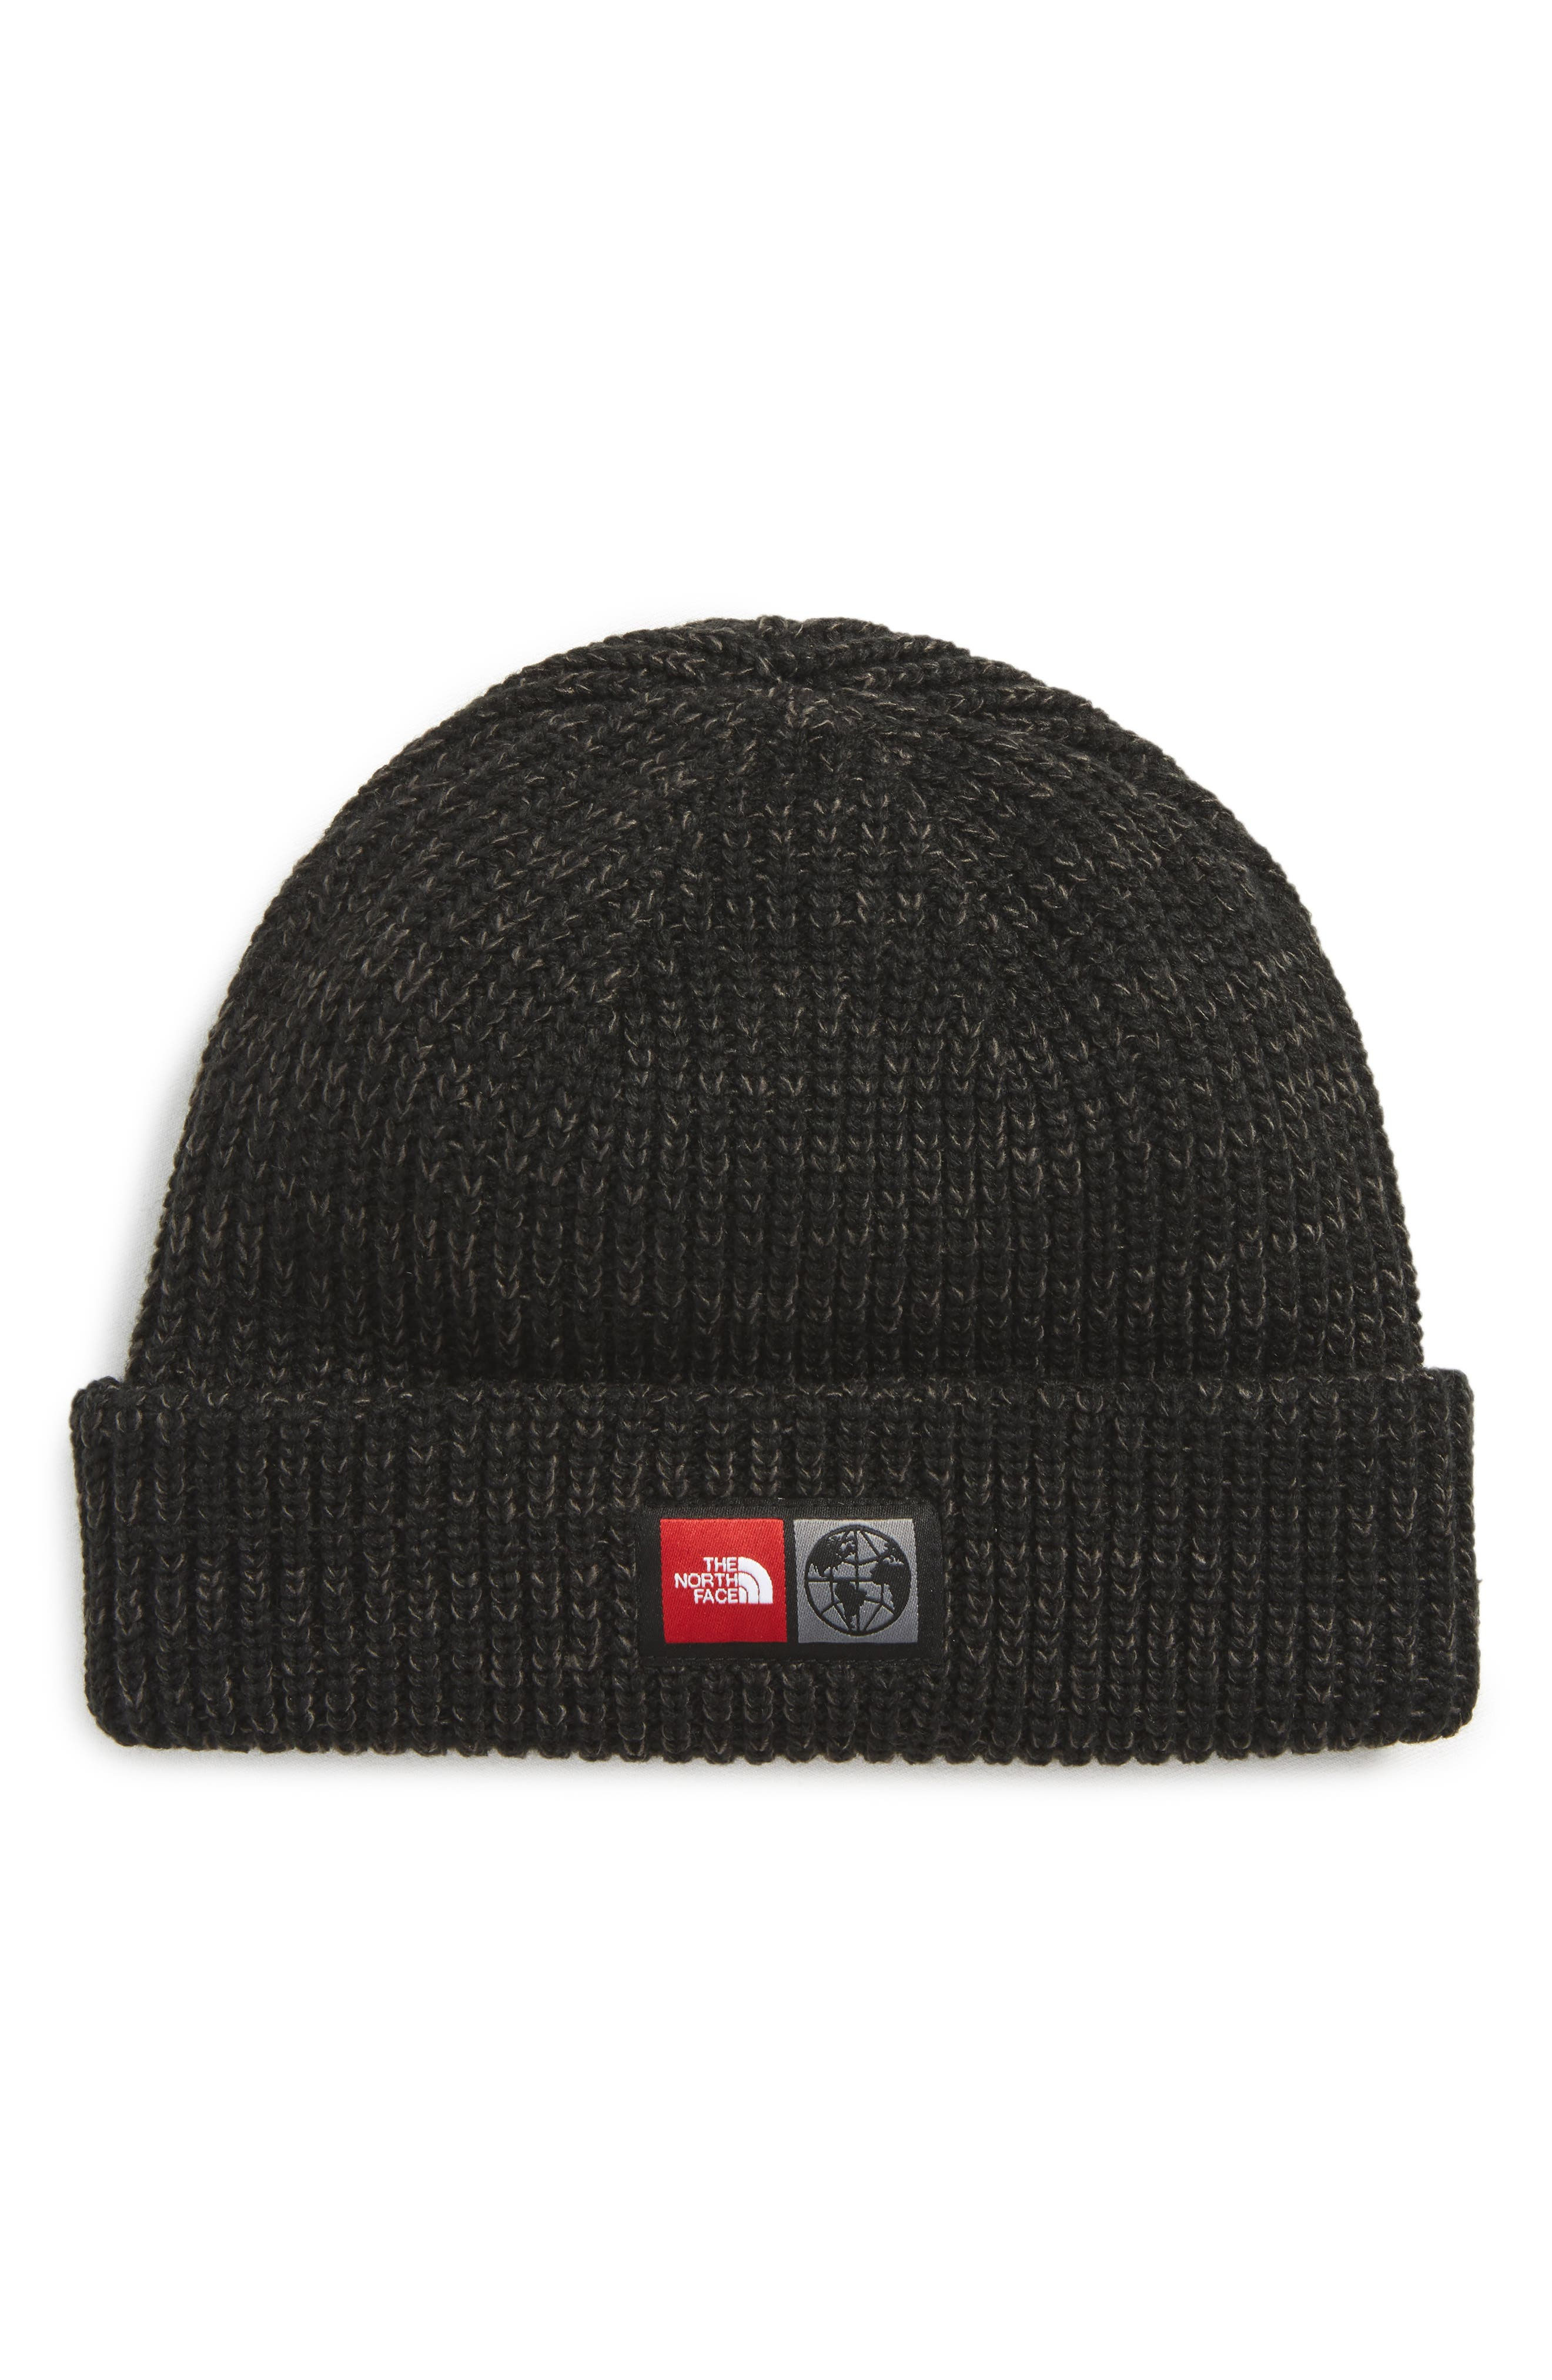 THE NORTH FACE,                             International Collection Acrylic Beanie,                             Main thumbnail 1, color,                             001